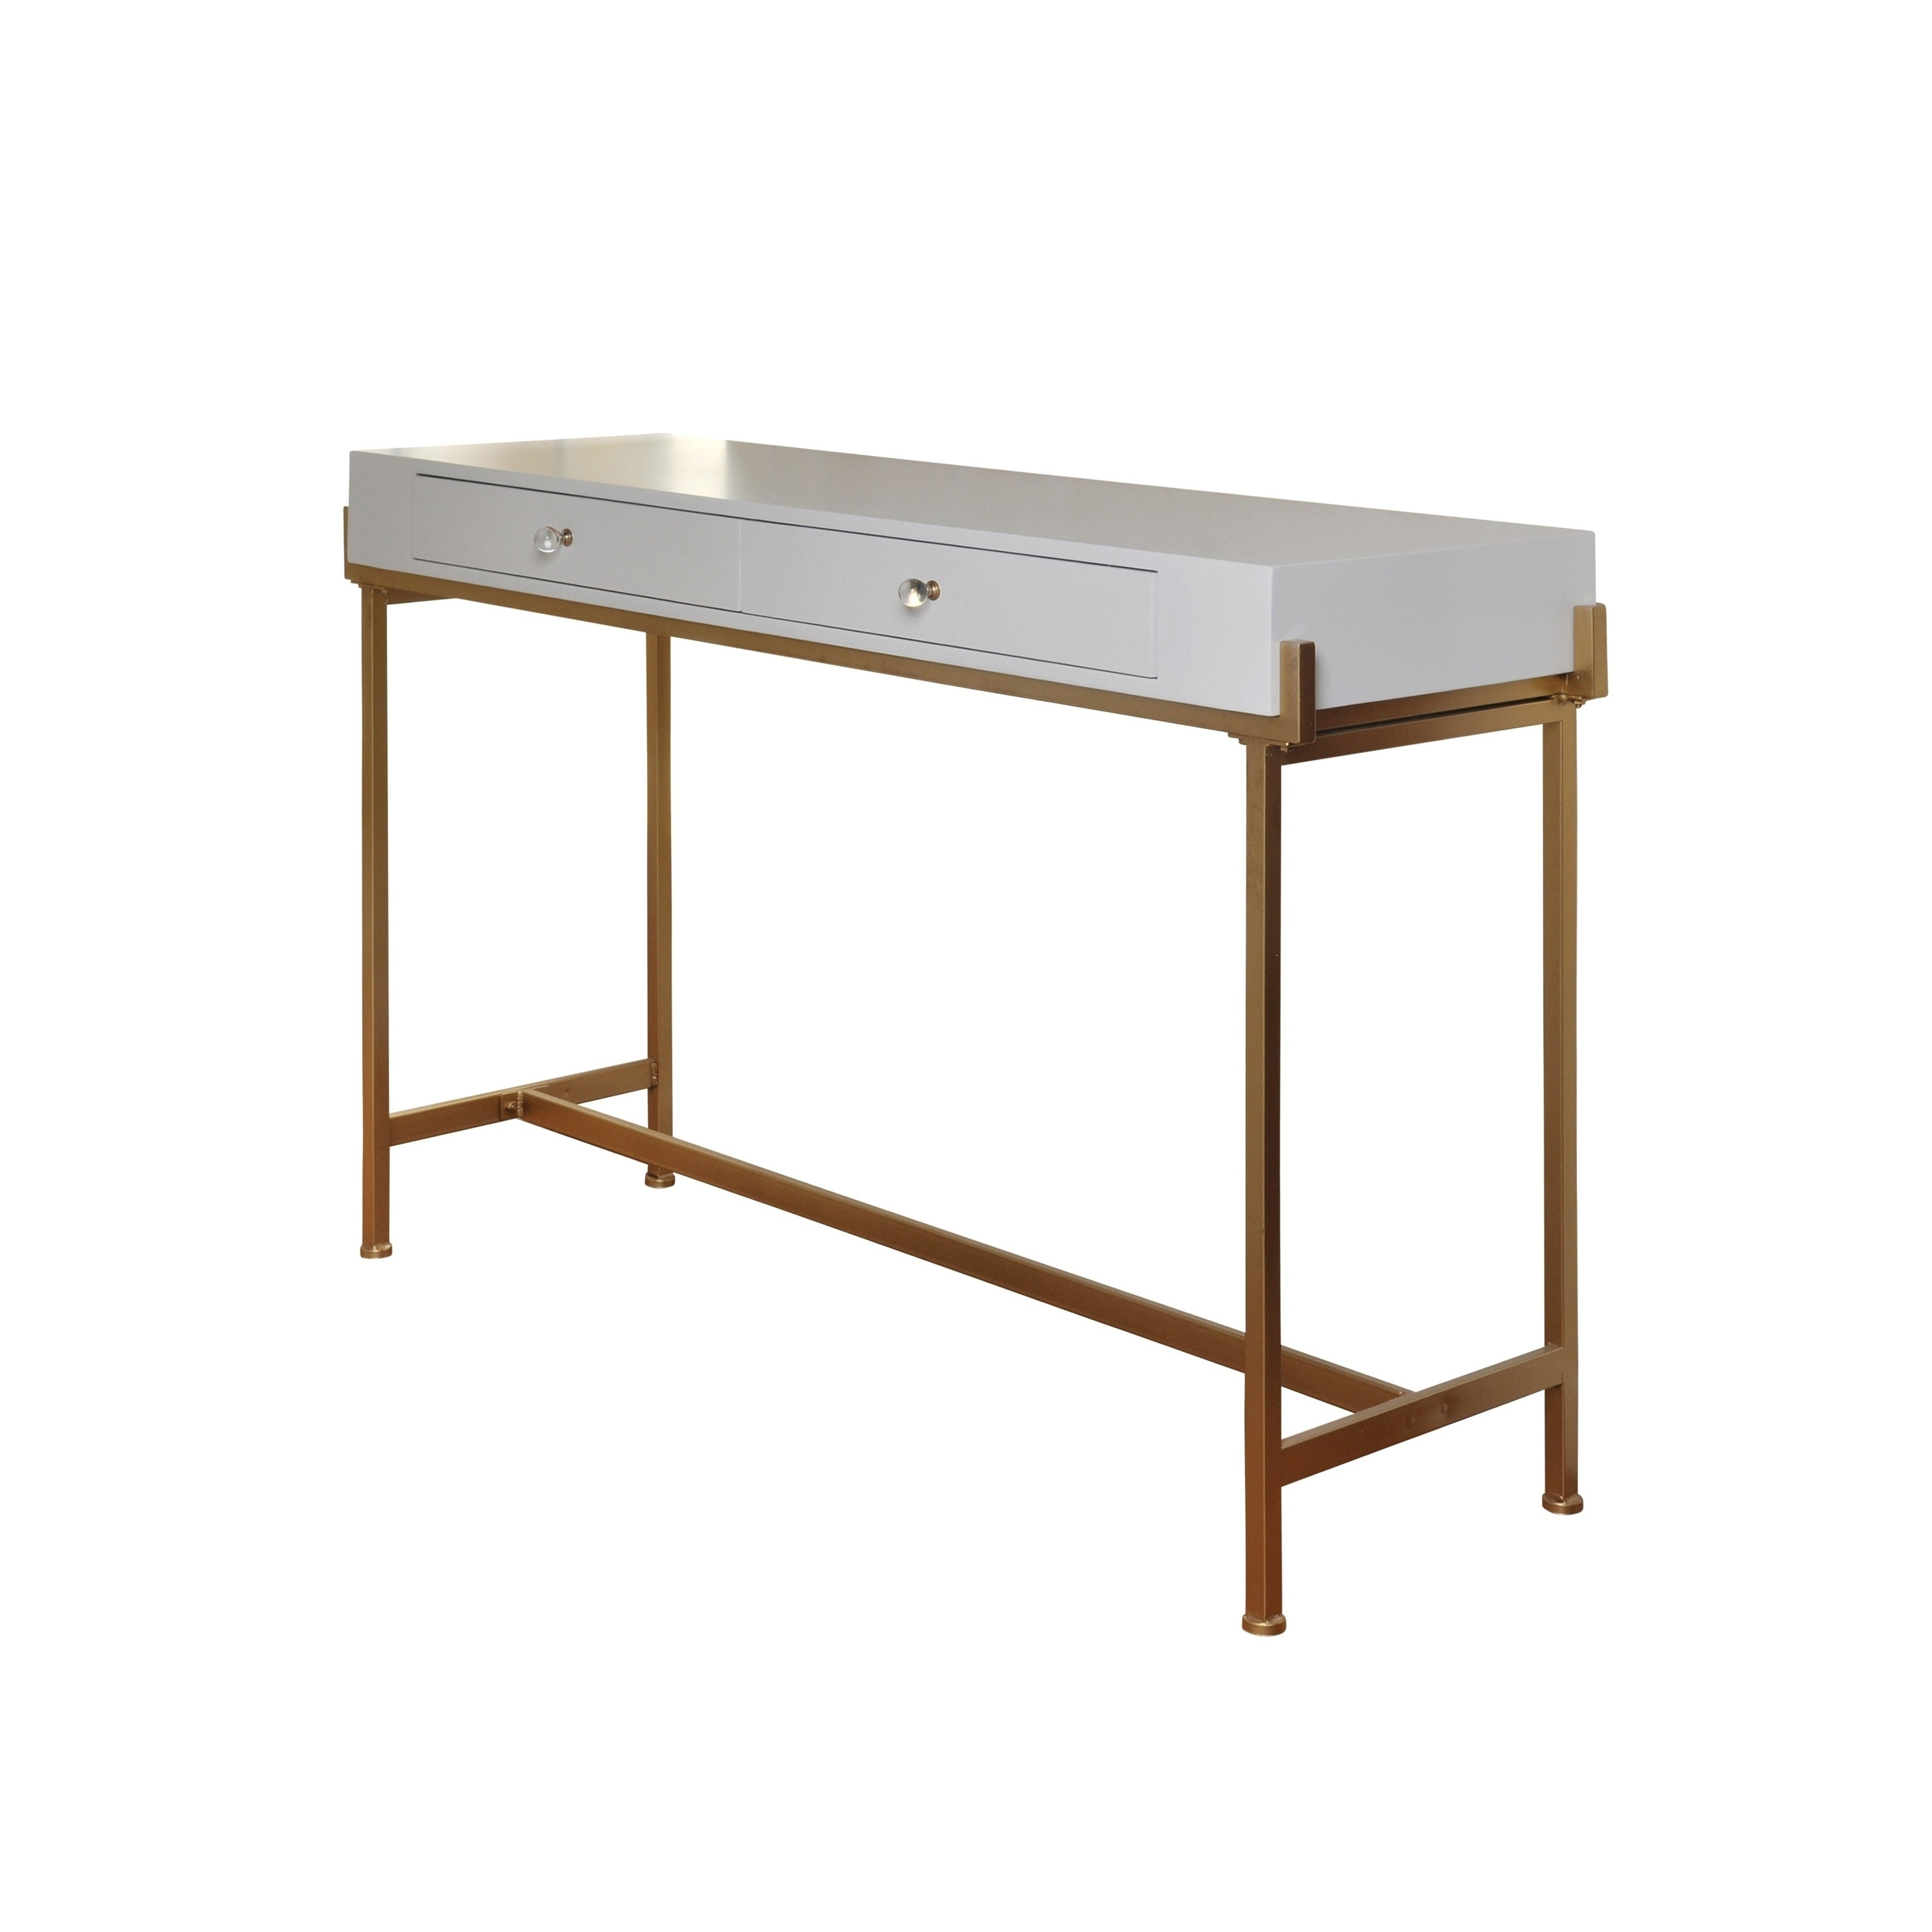 2 Drawer White Lacquer Console Table Antique Gold Frame Free Shipping Today 20730877